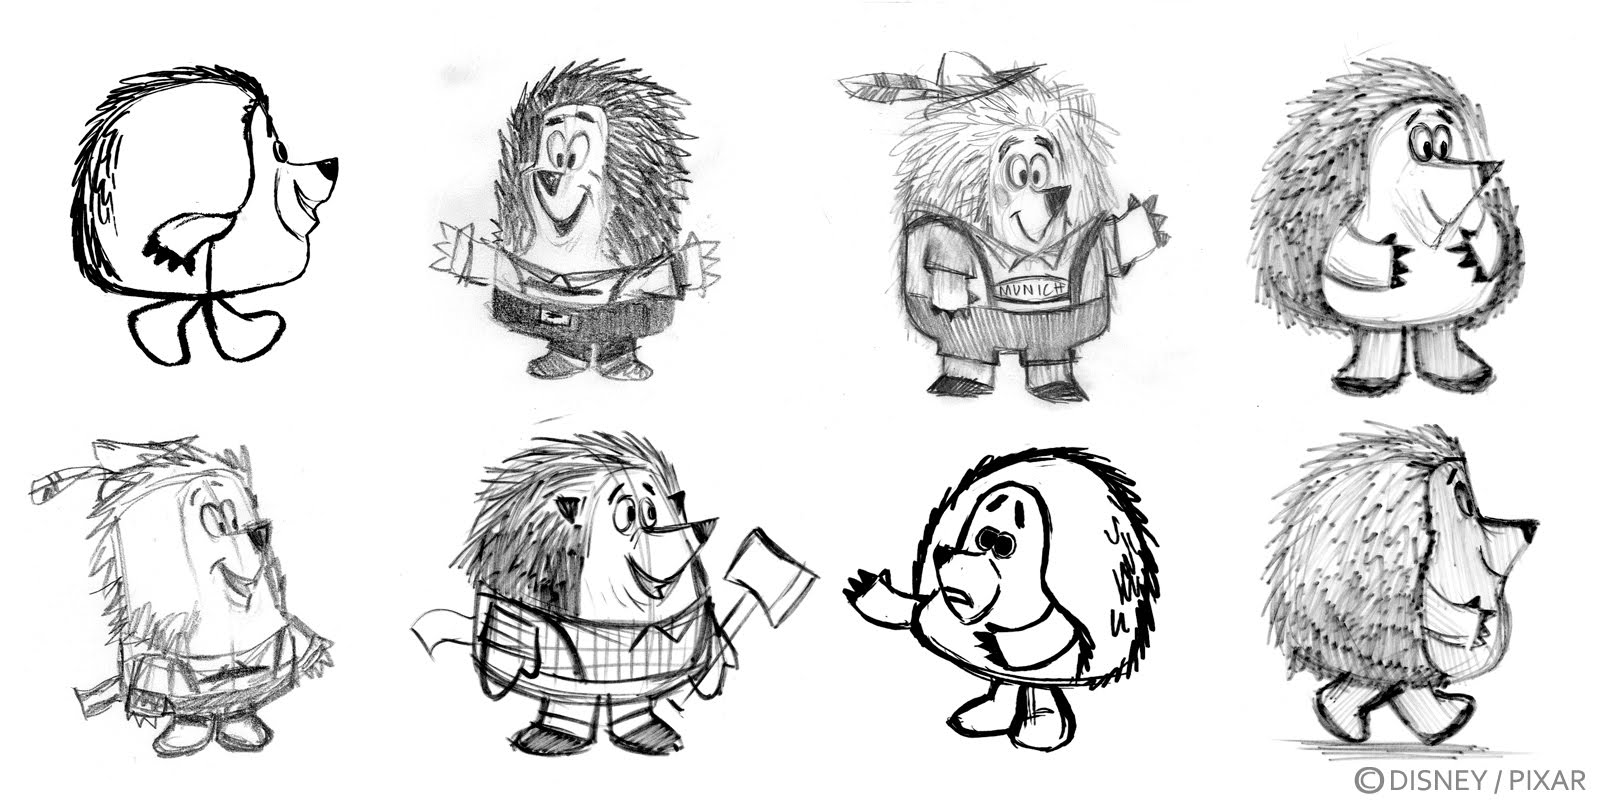 Pixar Character Design Process : Pixar artist nate wragg toy story illustrations and